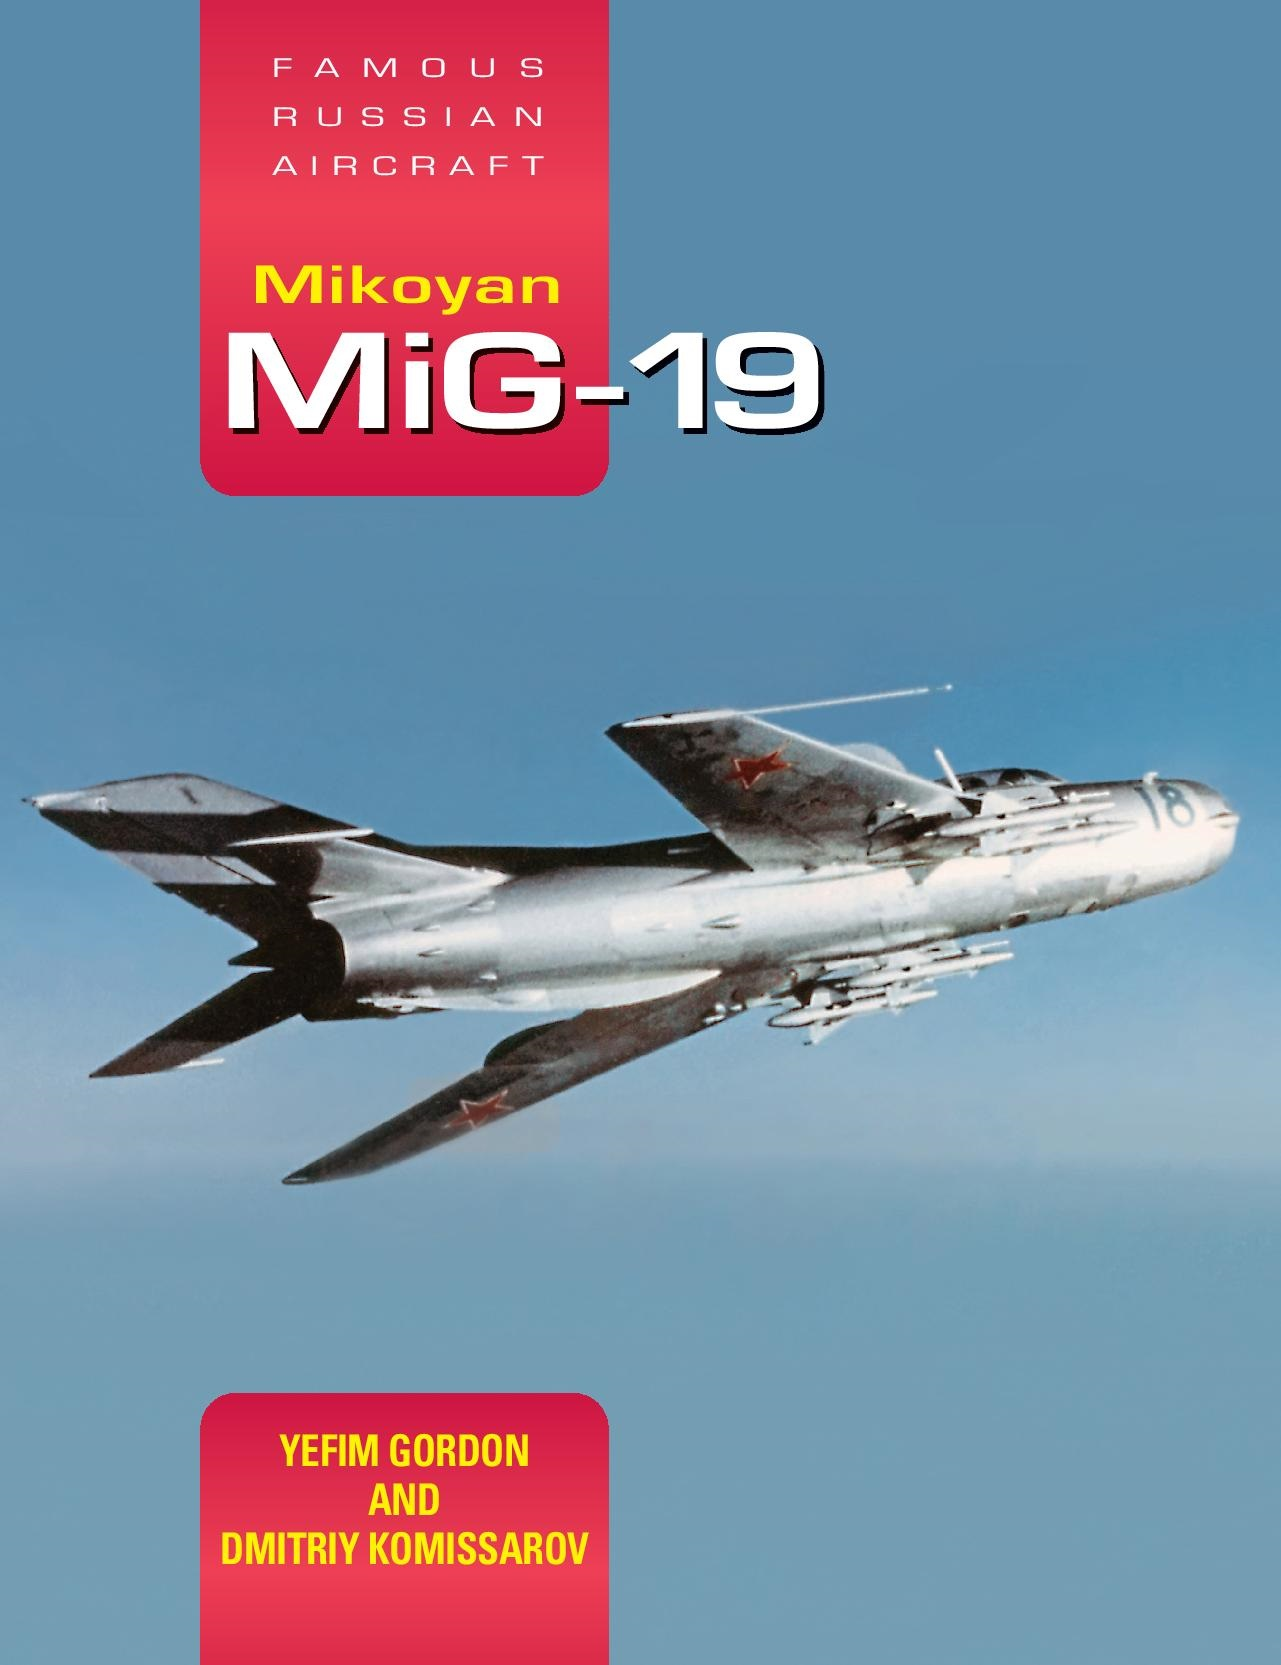 Famous Russian Aircraft: Mikoyan MiG-19